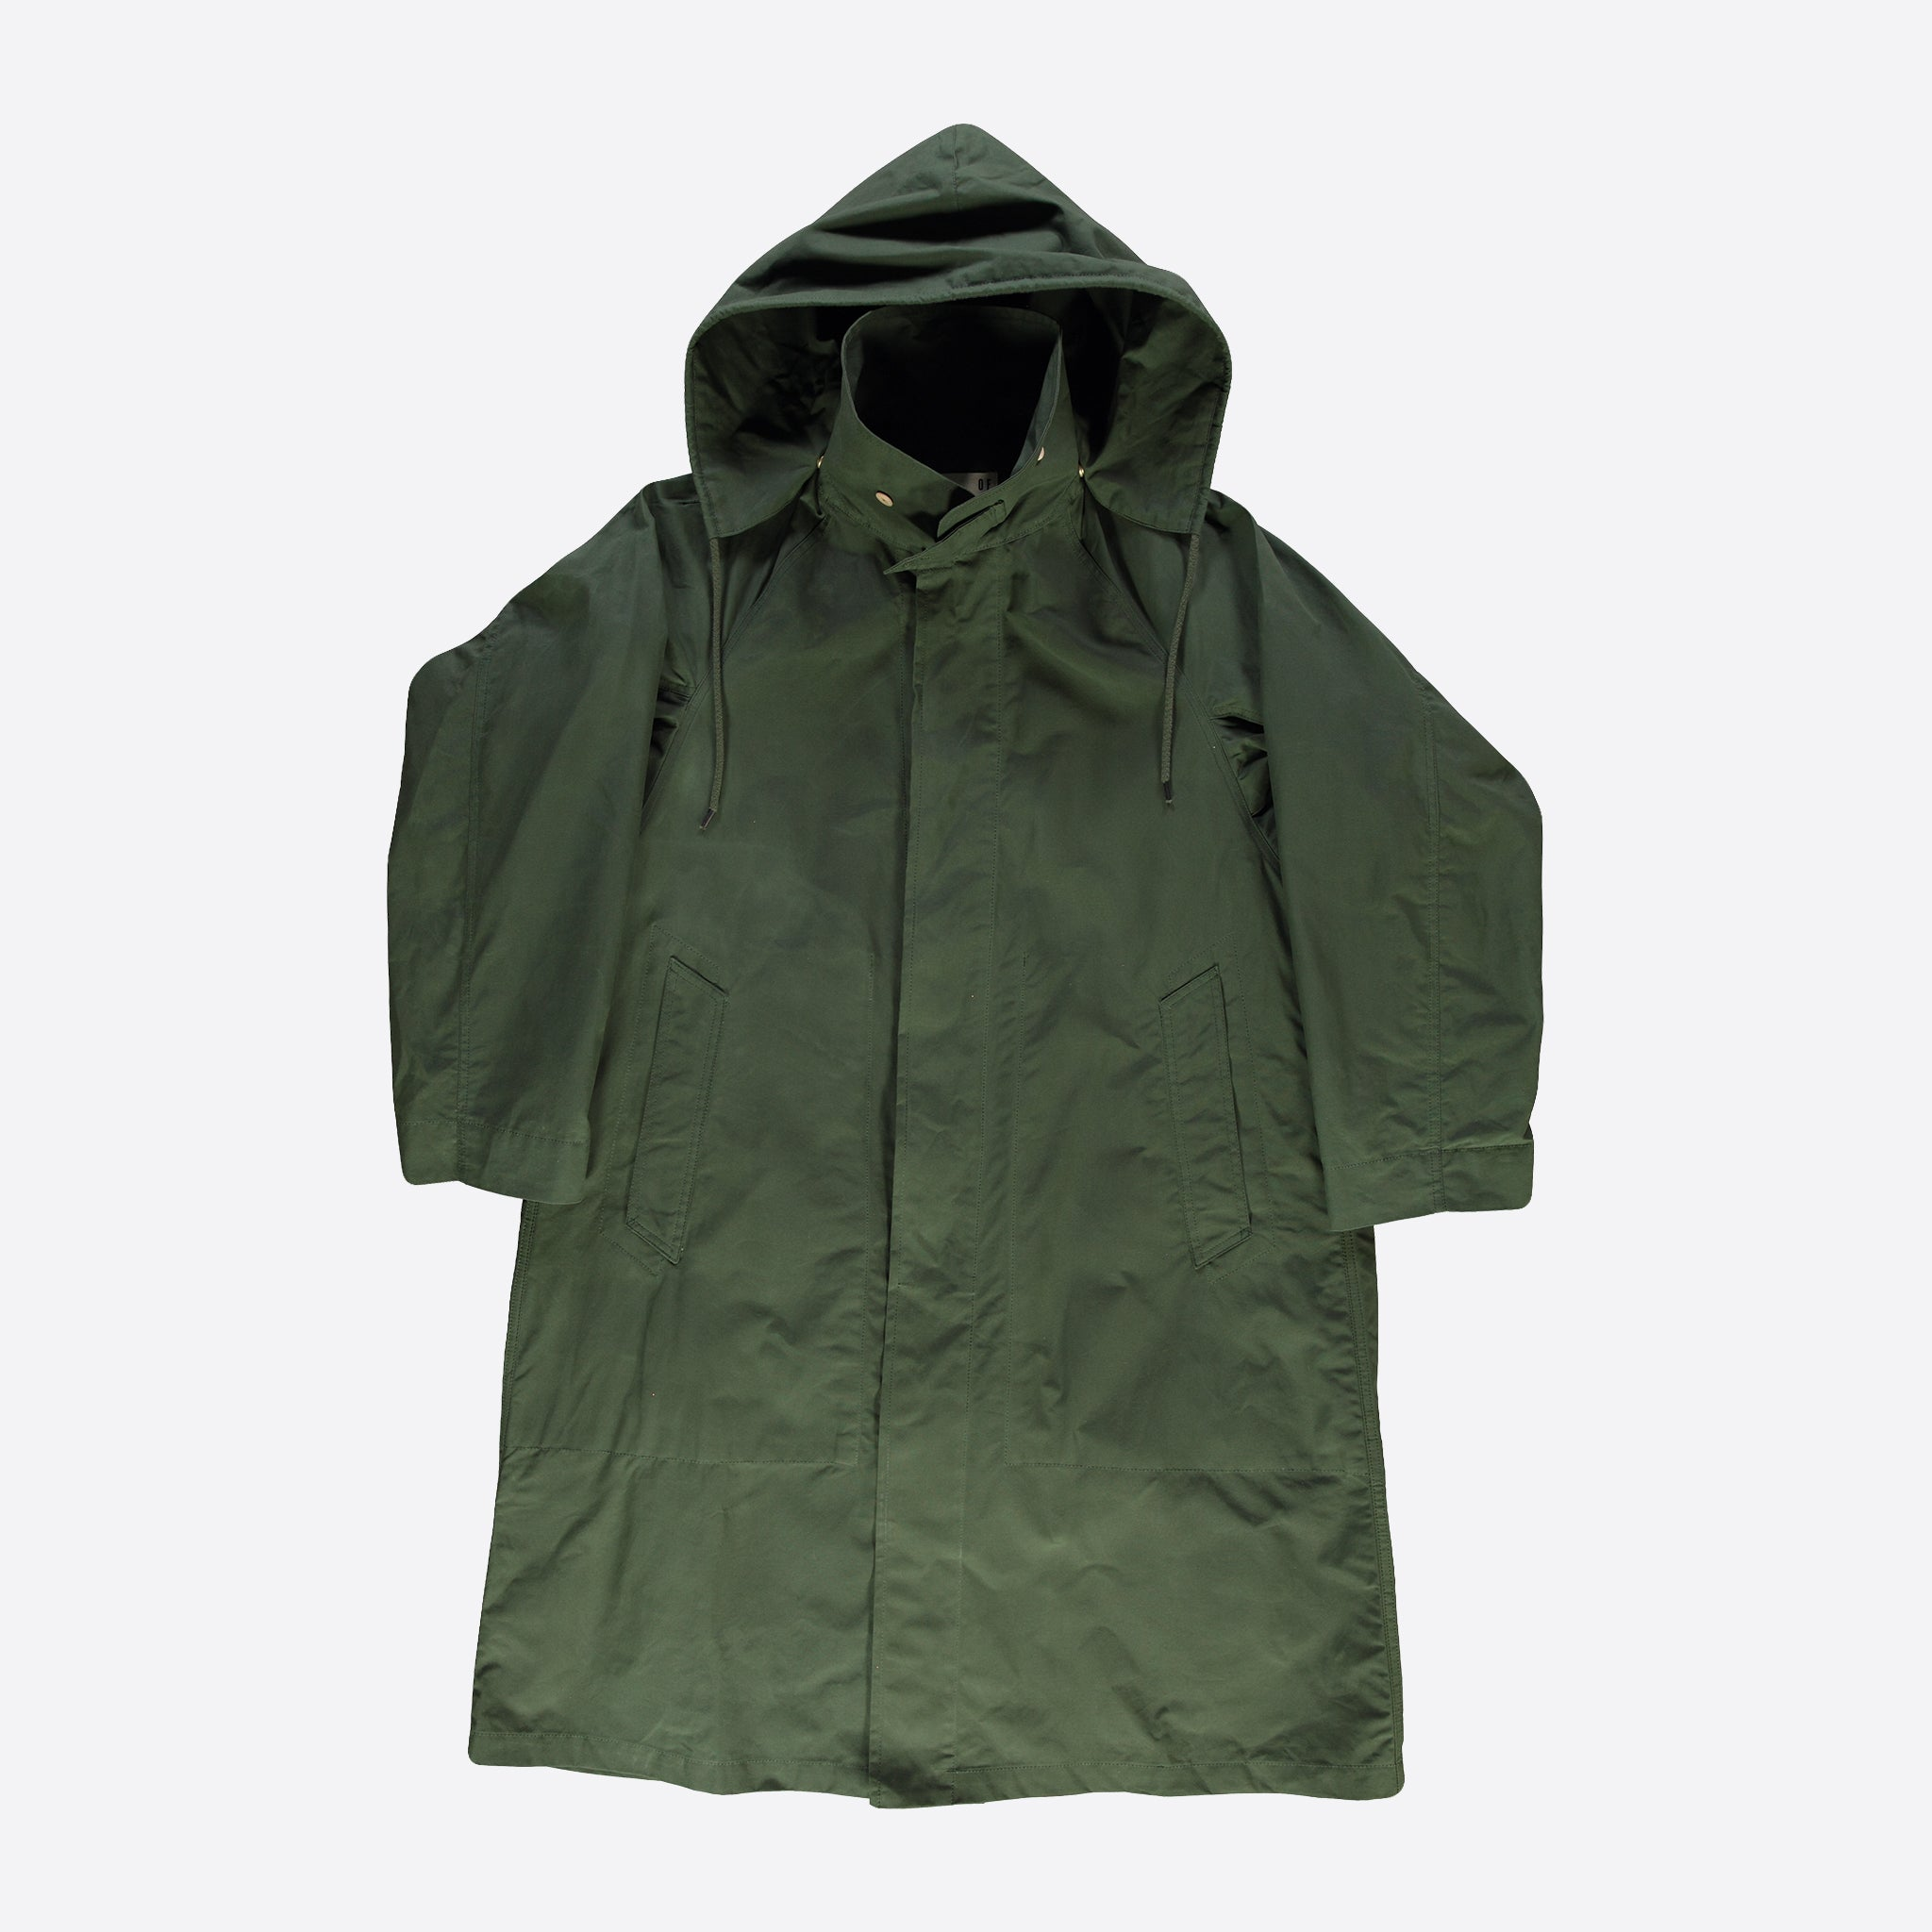 Girls of Dust Waxed Army Trenchcoat in Racing Green